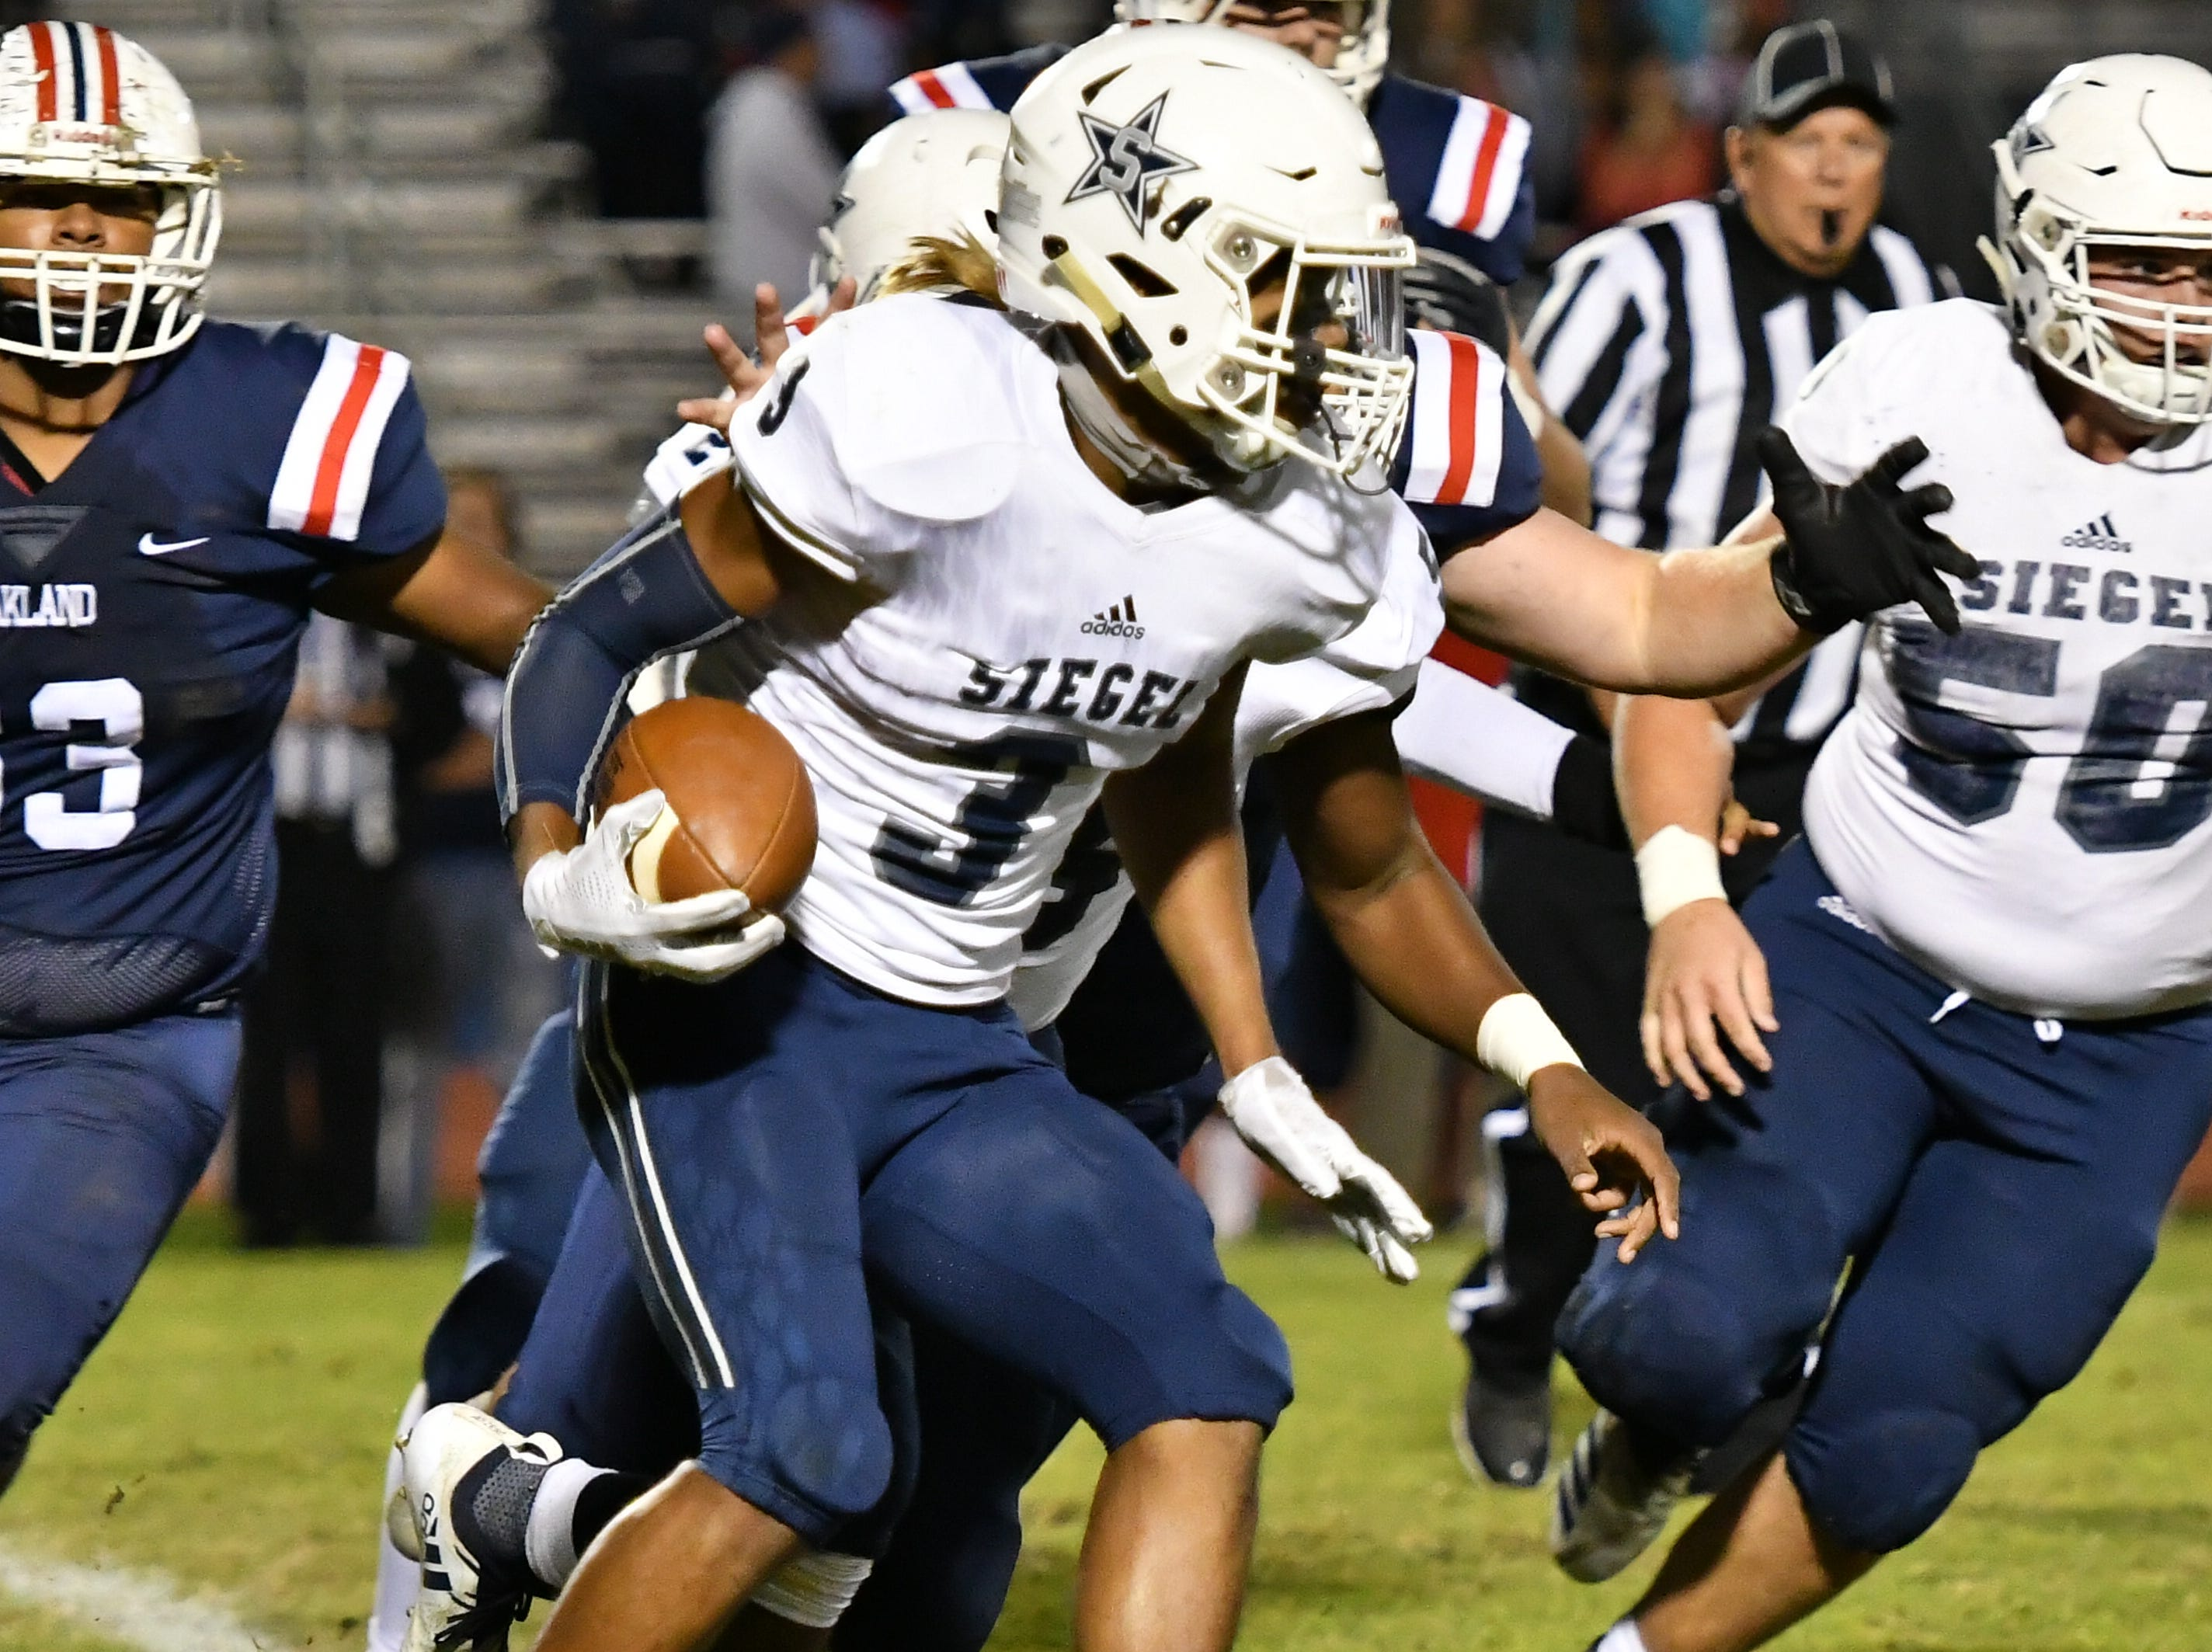 Siegel's Joseph Perry rushes for yardage against Siegel Friday night.